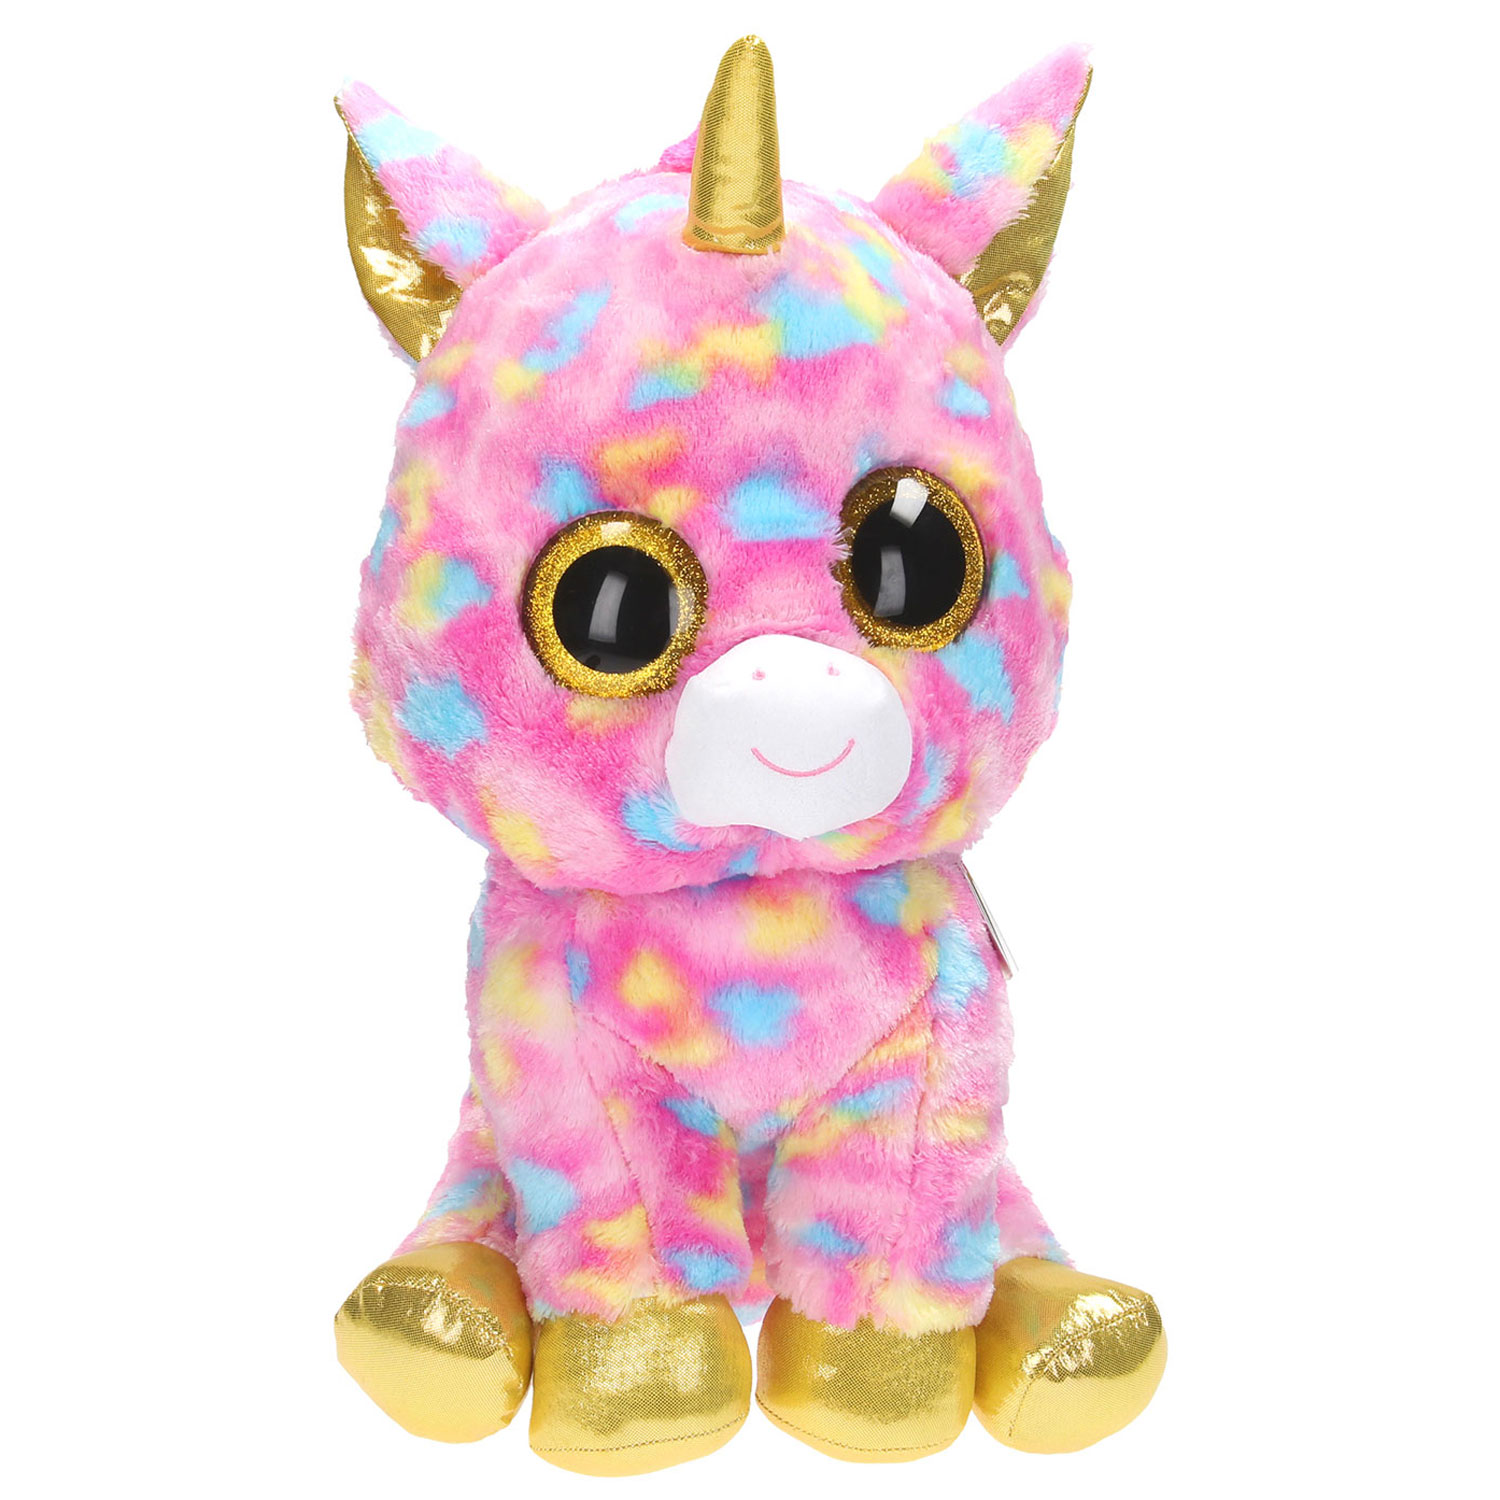 Ty Beanie Boo XL Unicorn - Fantasia. Klik om te zoomen Click the image to  enlarge. Beschrijving afbeelding 9f23d85cba61